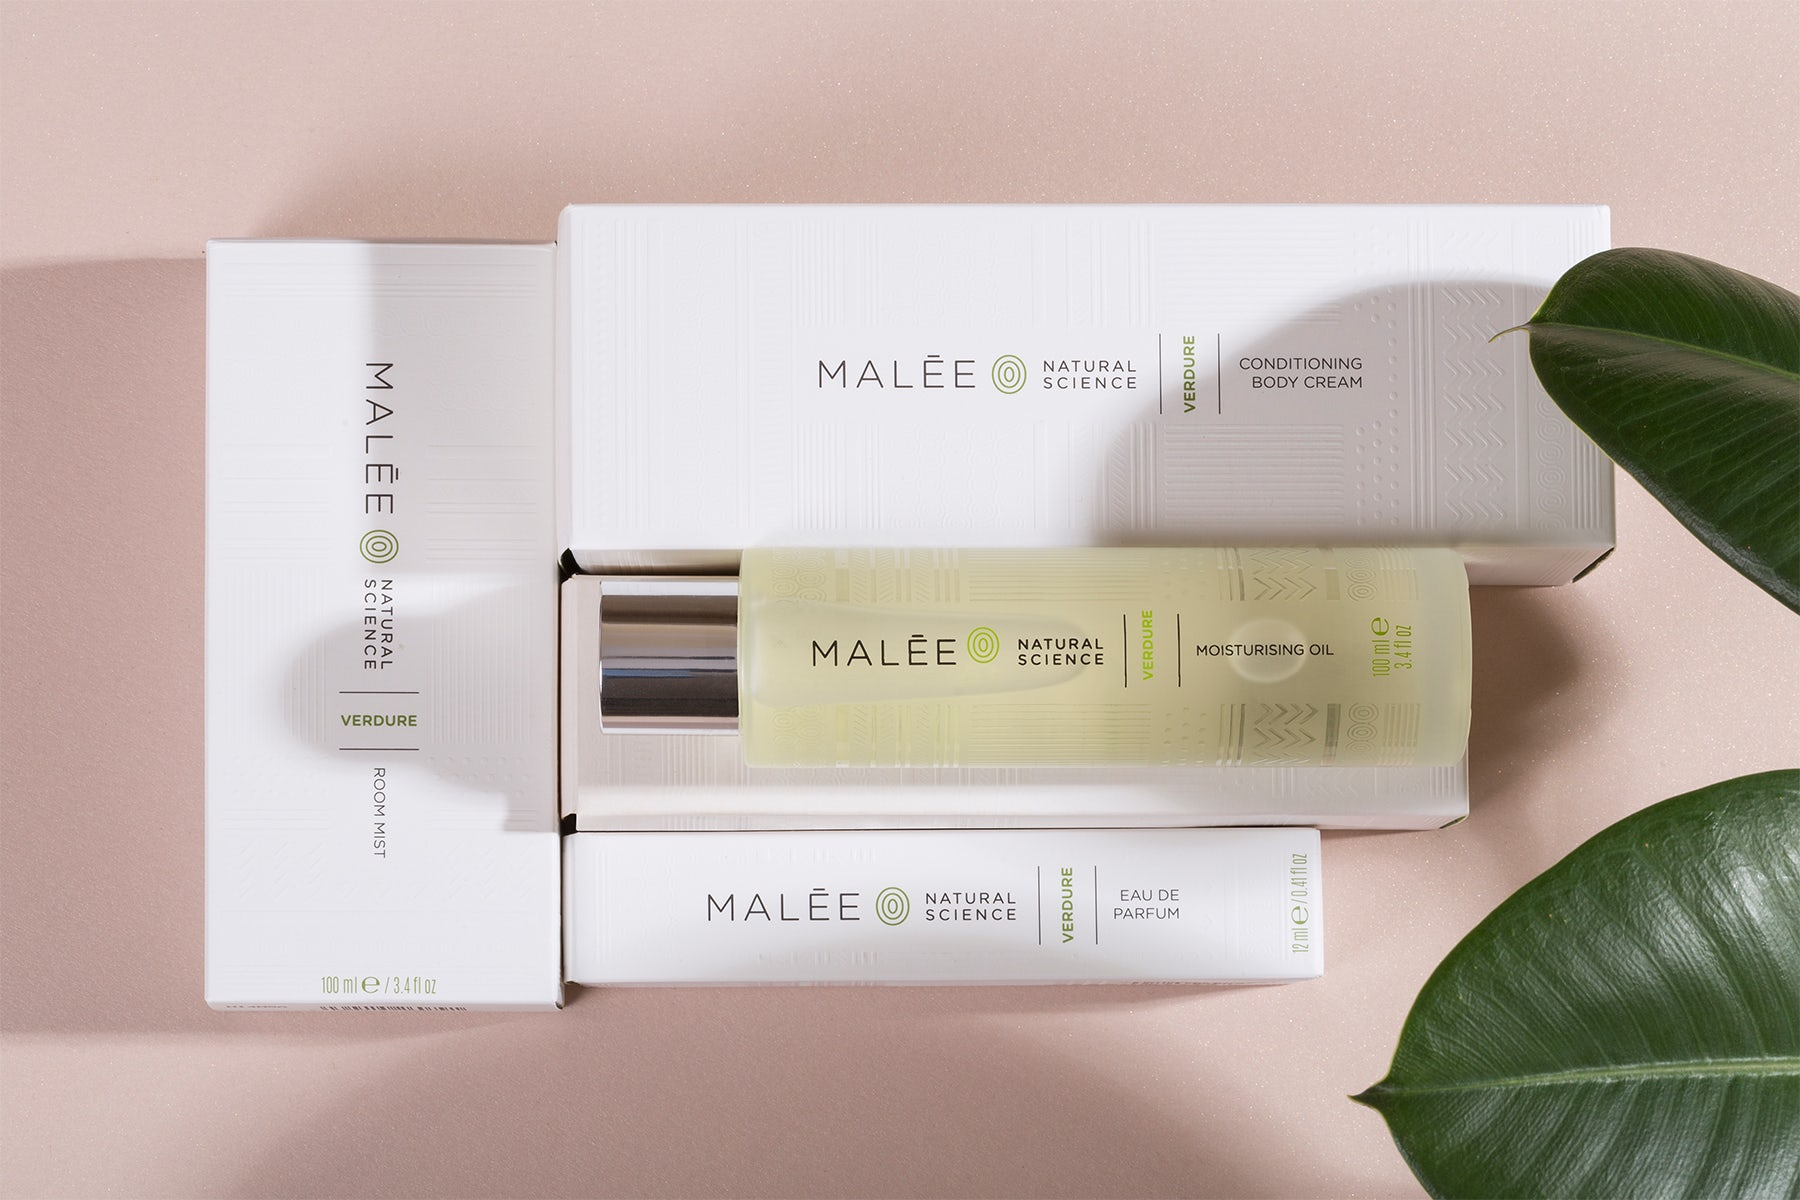 Malée Natural Science collection including skincare and fragrances. Malée Natural Science.